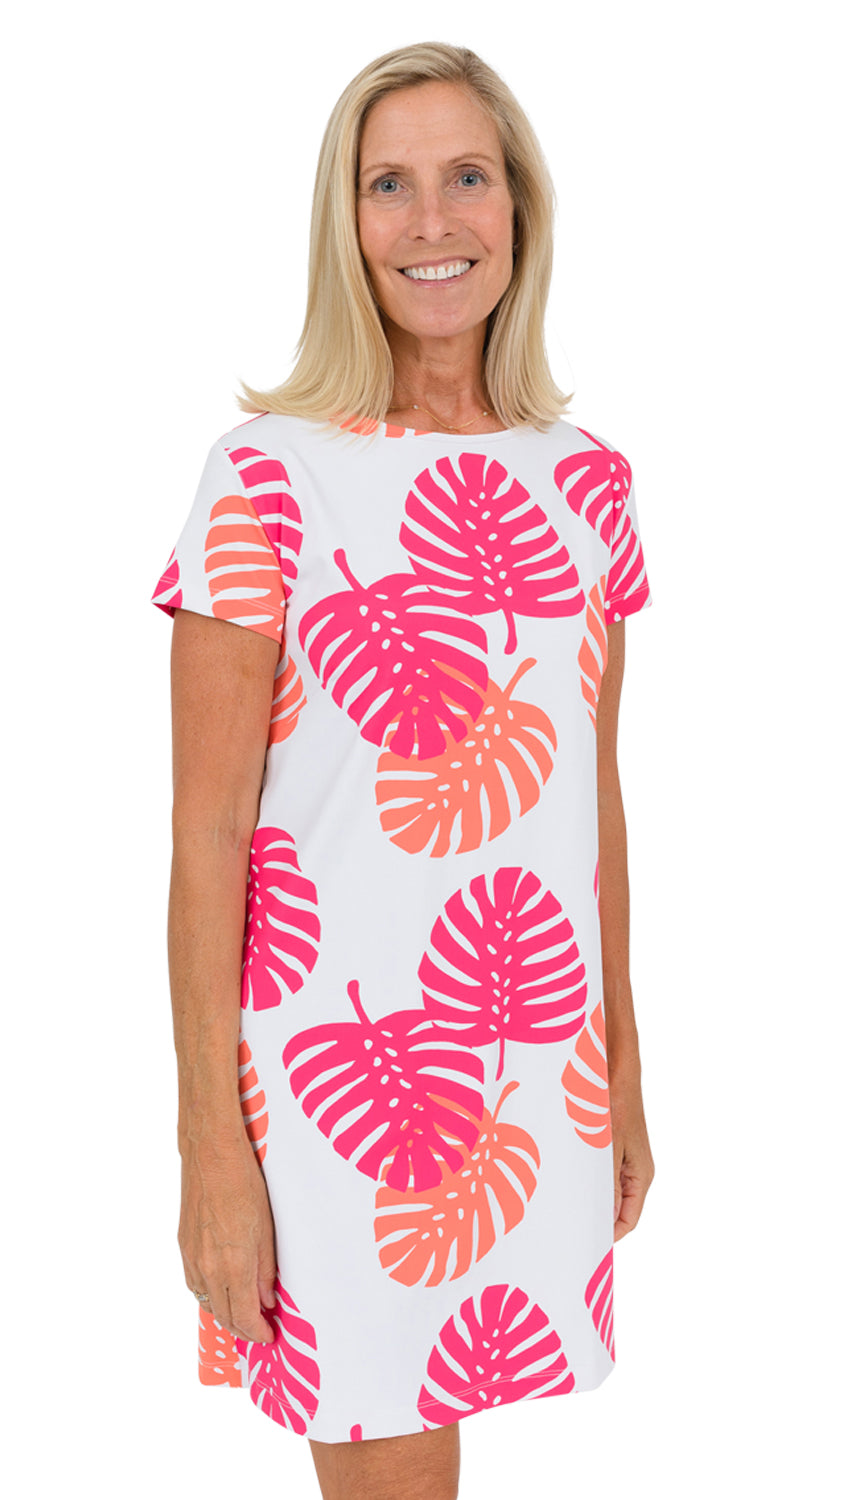 Marina Dress - Hot Pink/Salmon Dancing Palms- SAMPLE FINAL SALE